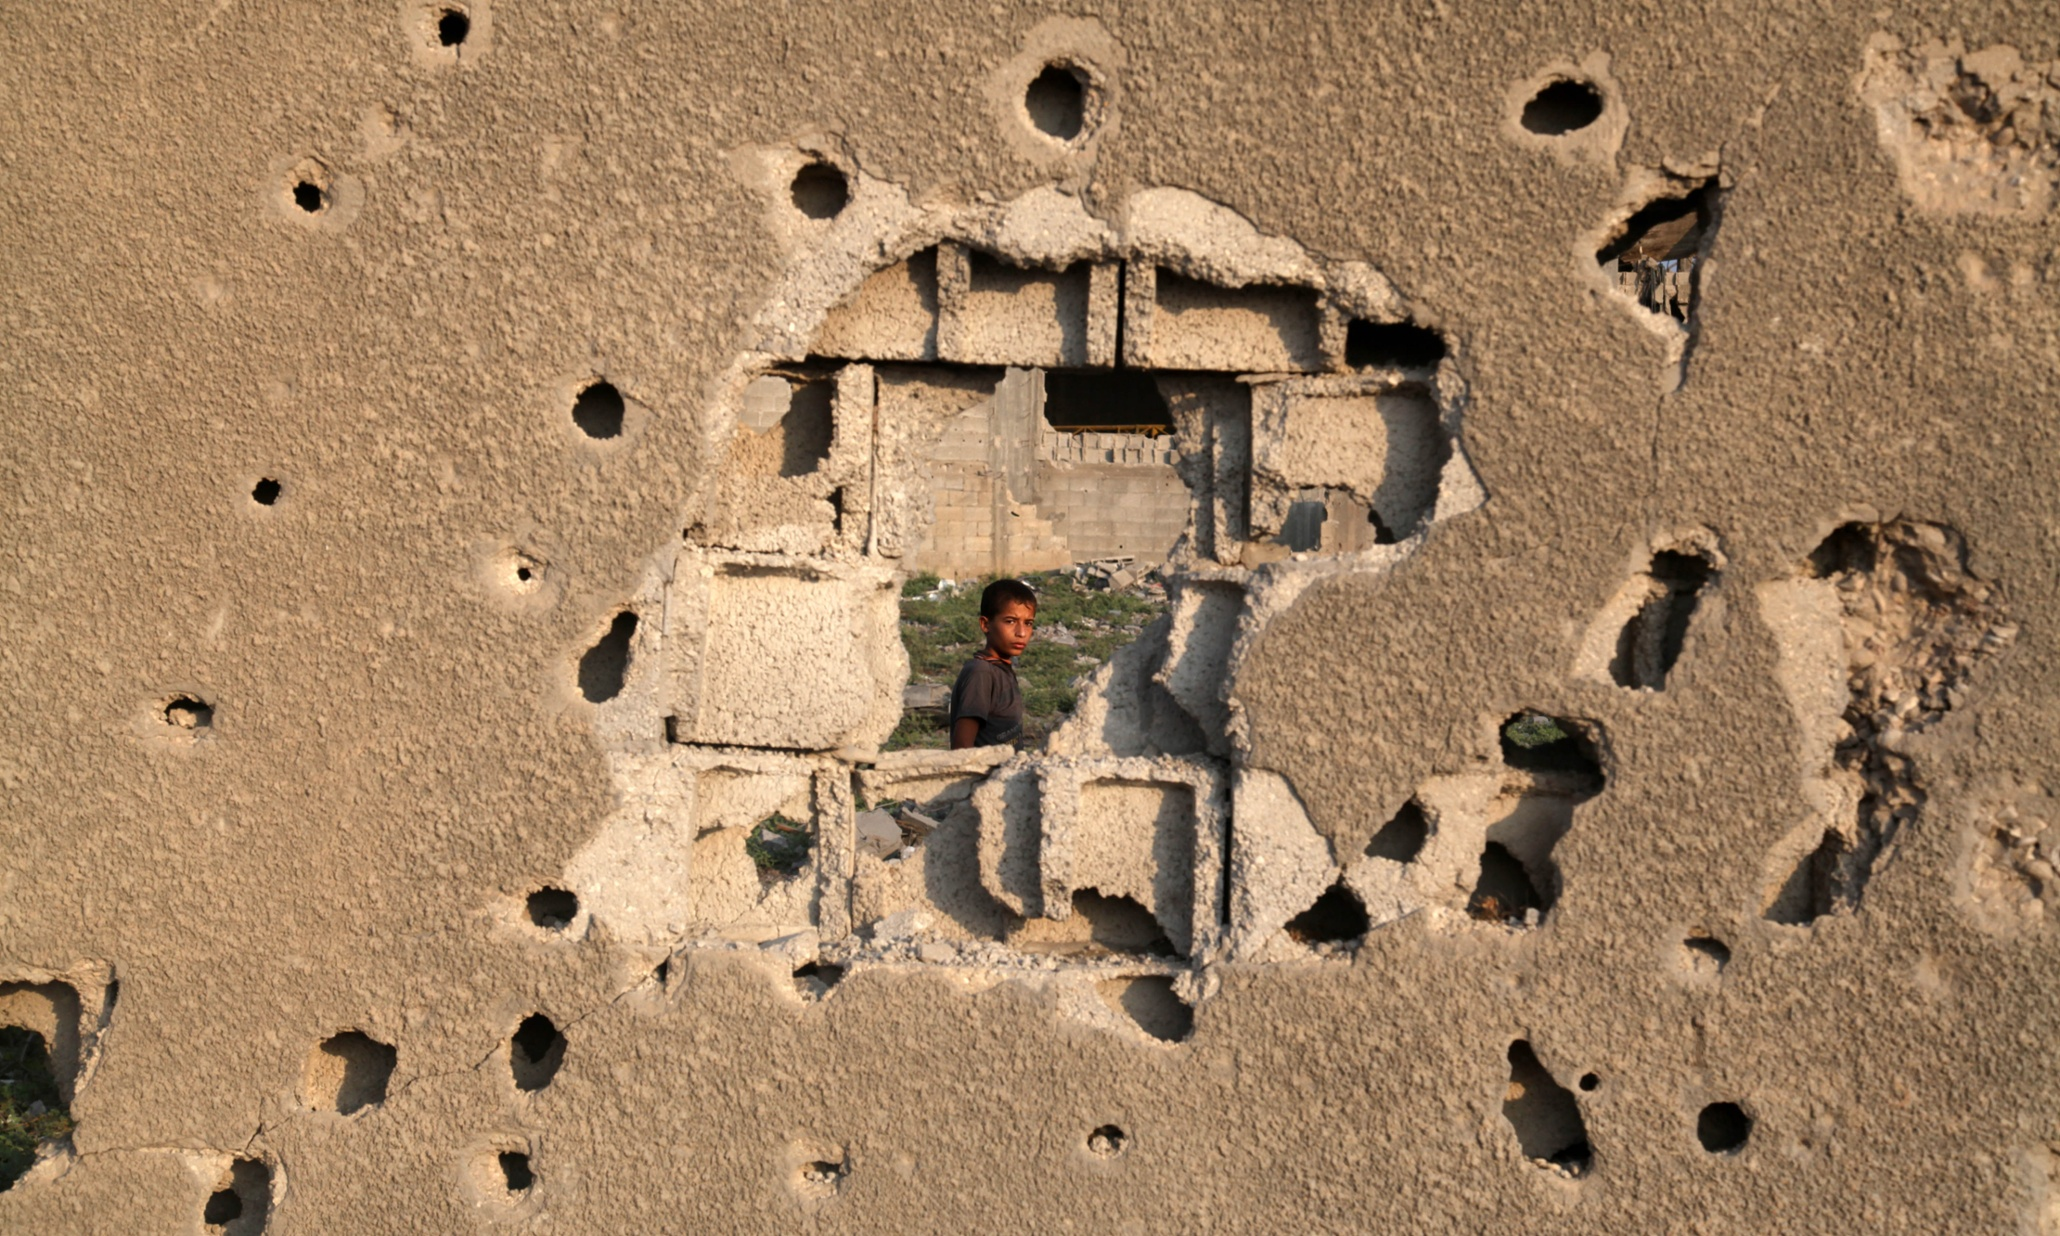 A year after the war, Gaza grieves for its child casualties